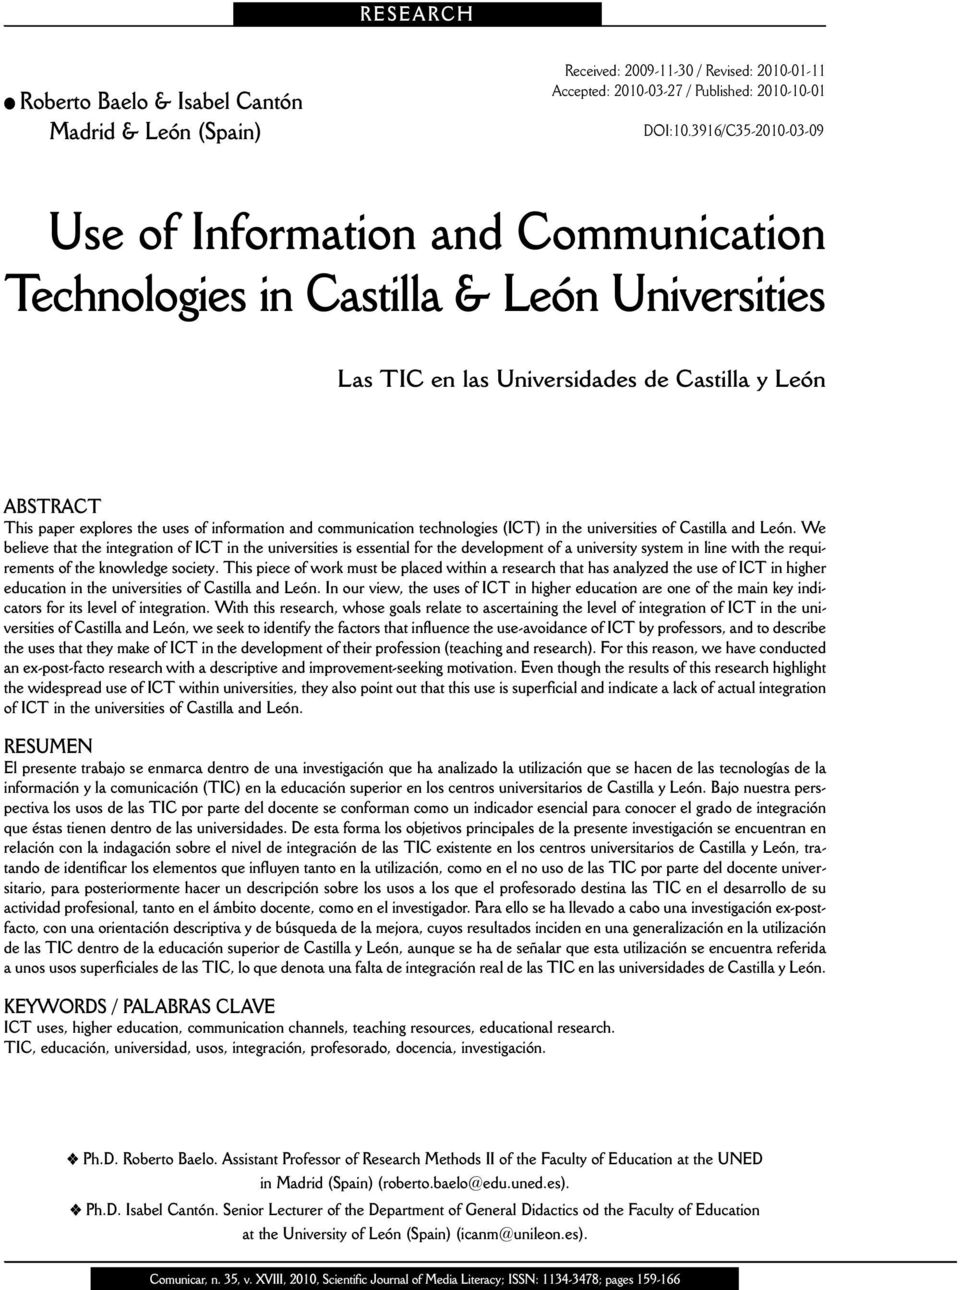 information and communication technologies (ICT) in the universities of Castilla and León.